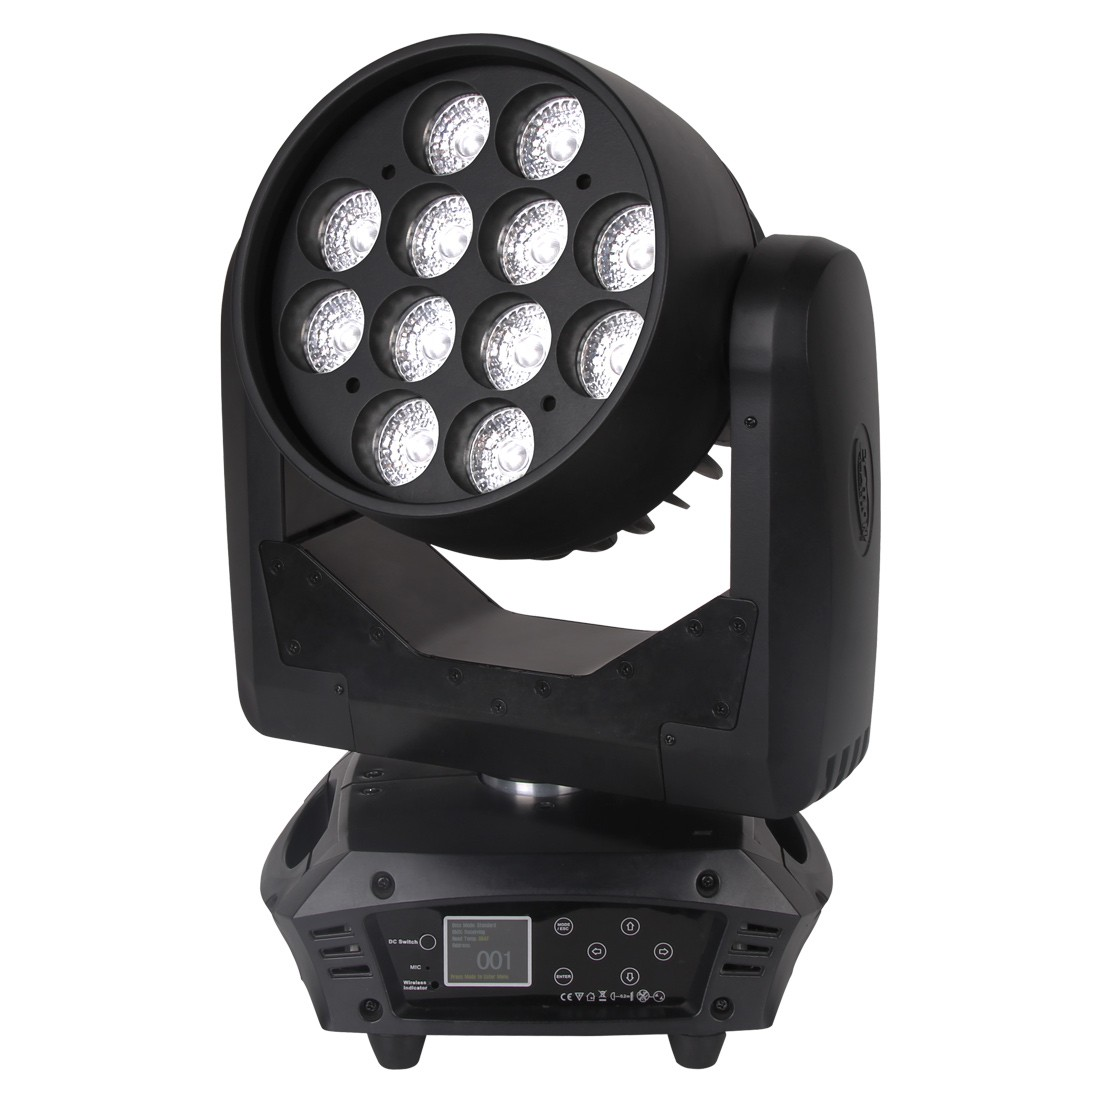 Elation RAYZOR Q12Z RGBW 12x 15W Quad Color RGBW LEDs Moving Head LED Wash (RAY524)